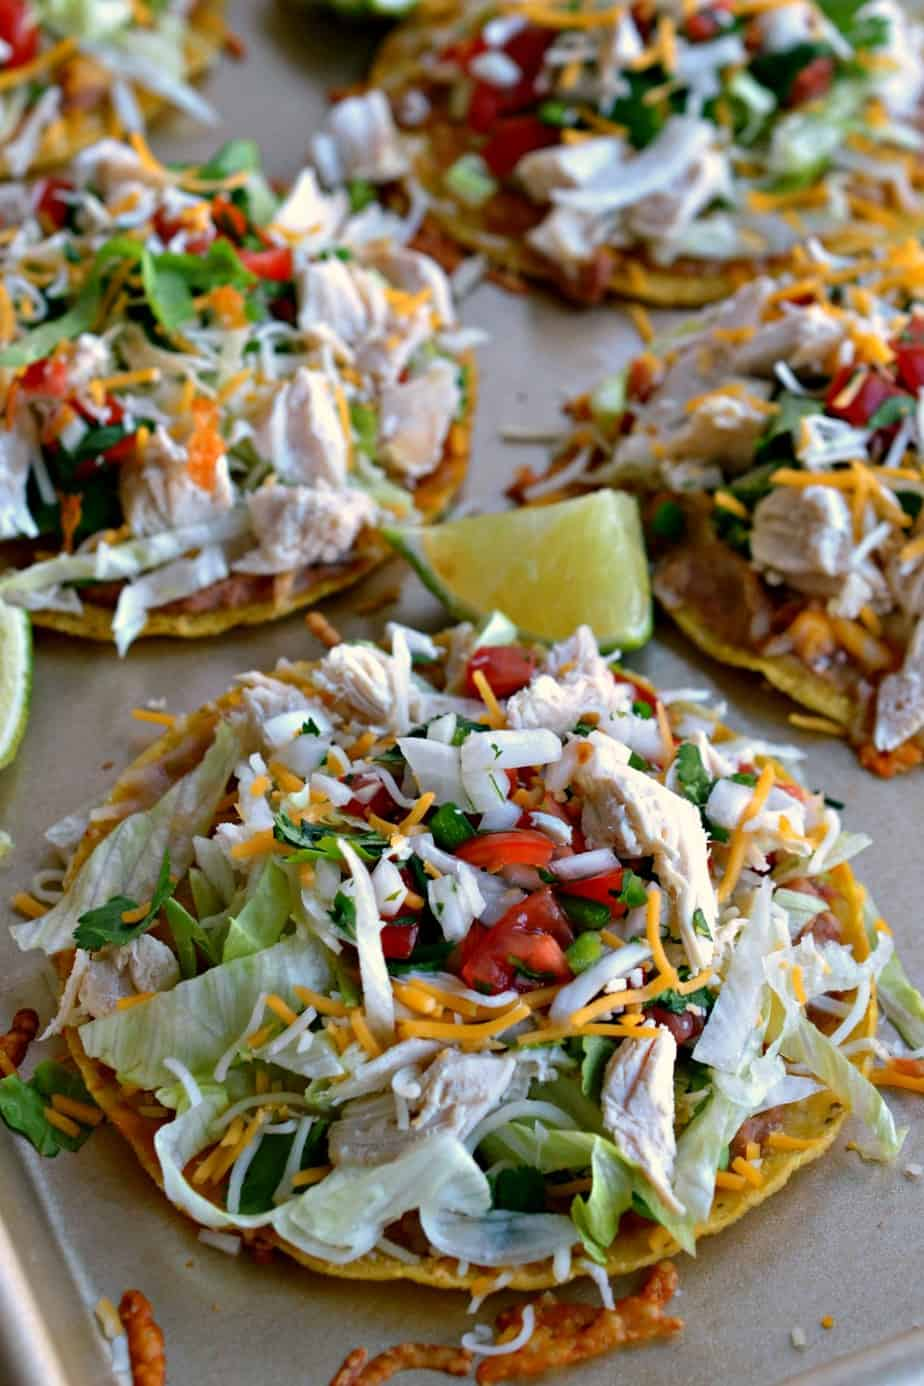 A five ingredient Pico de Gallo, refried beans, and Mexican Blend cheese take these chicken tostadas to the next level.